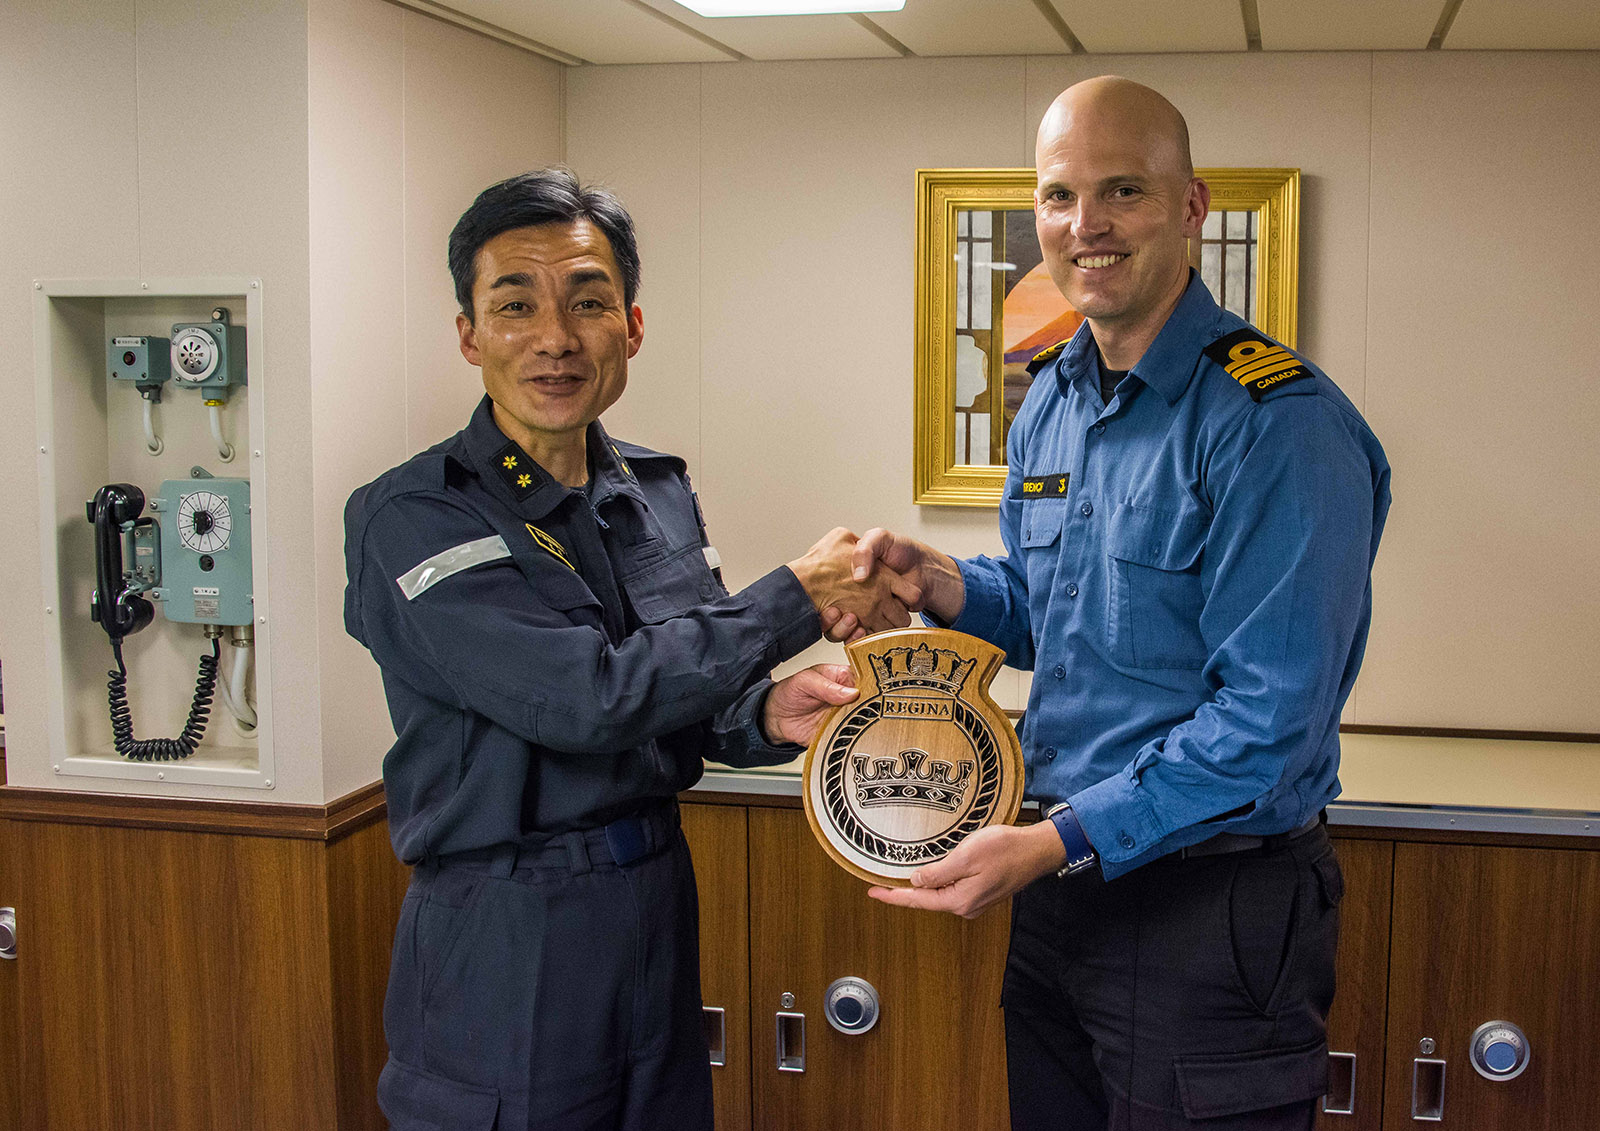 HMCS Regina's Commanding Officer, Commander Jacob French, right, presents a commemorative gift to the Commanding Officer of JS Akebono.